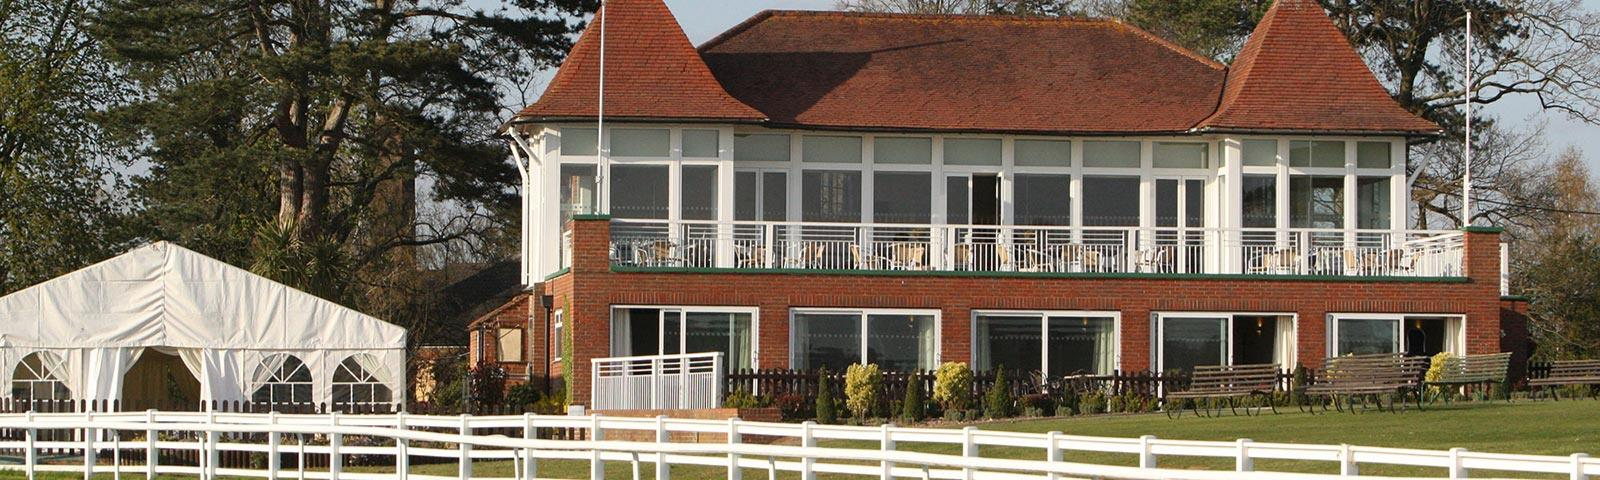 A view of the upper eclipse suite at Lingfield Park Racecourse.